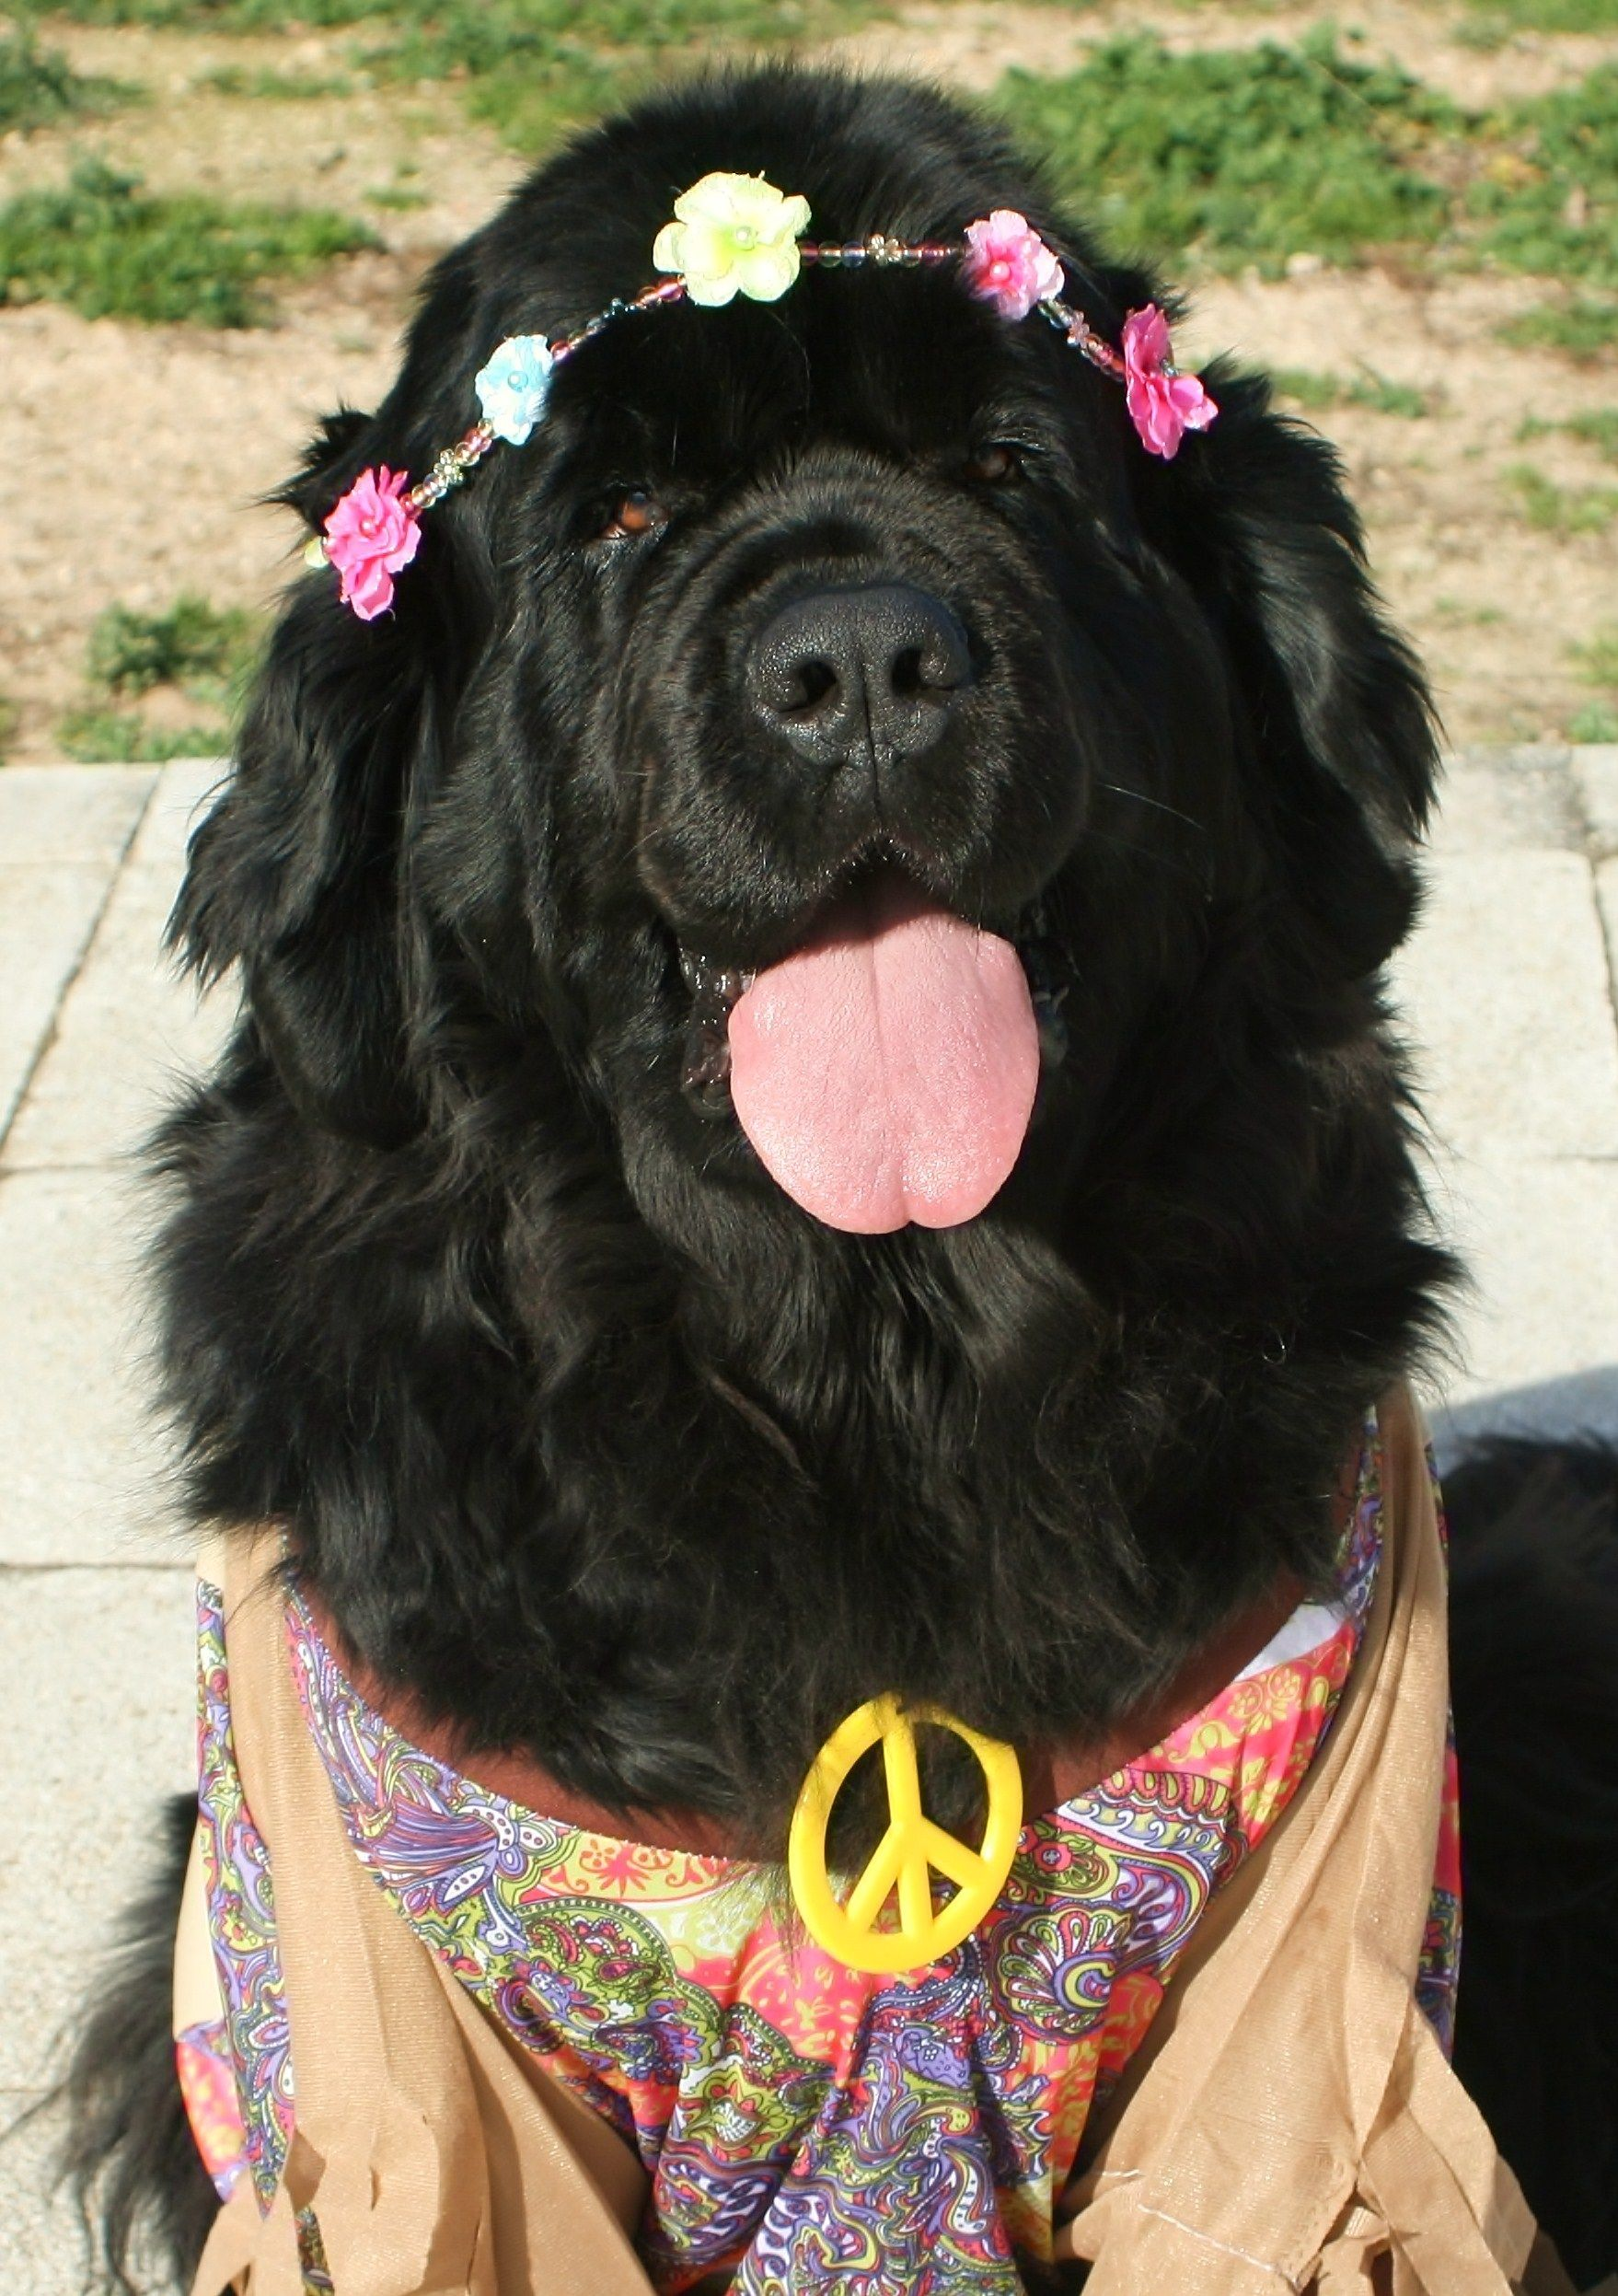 Pin By Erica Carlberg On Pets Big Dog Costumes Big Dogs Dogs